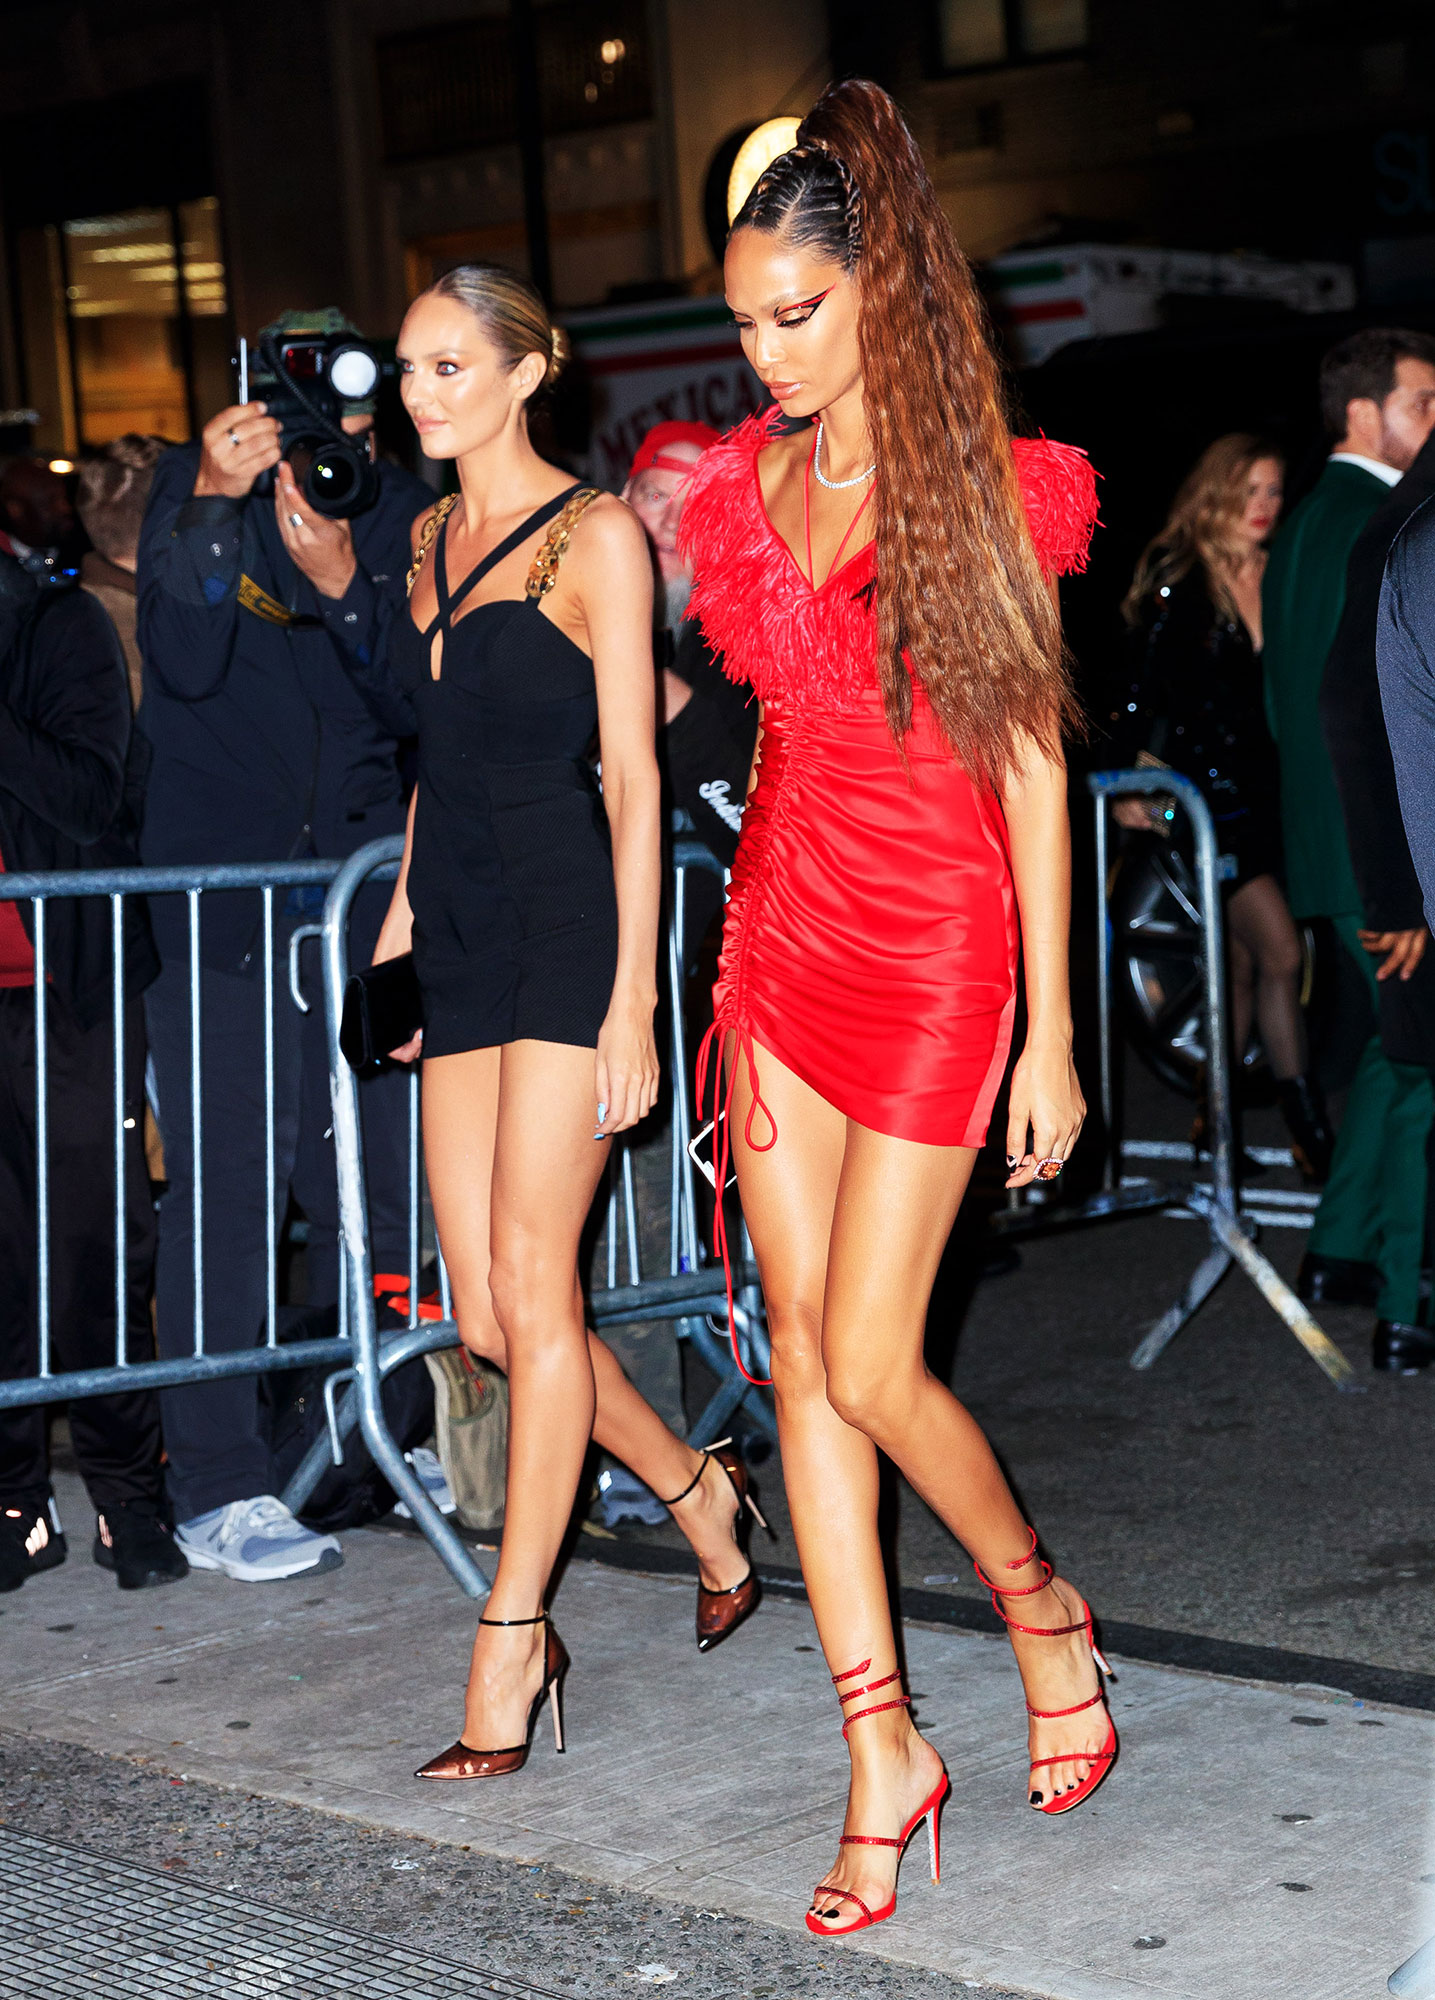 Candice Swanepoel, Joan Smalls after party met gala 2019 - The Victoria's Secret Angels walked hand-in-hand in sparkly short numbers, looking ready to dance the night away.